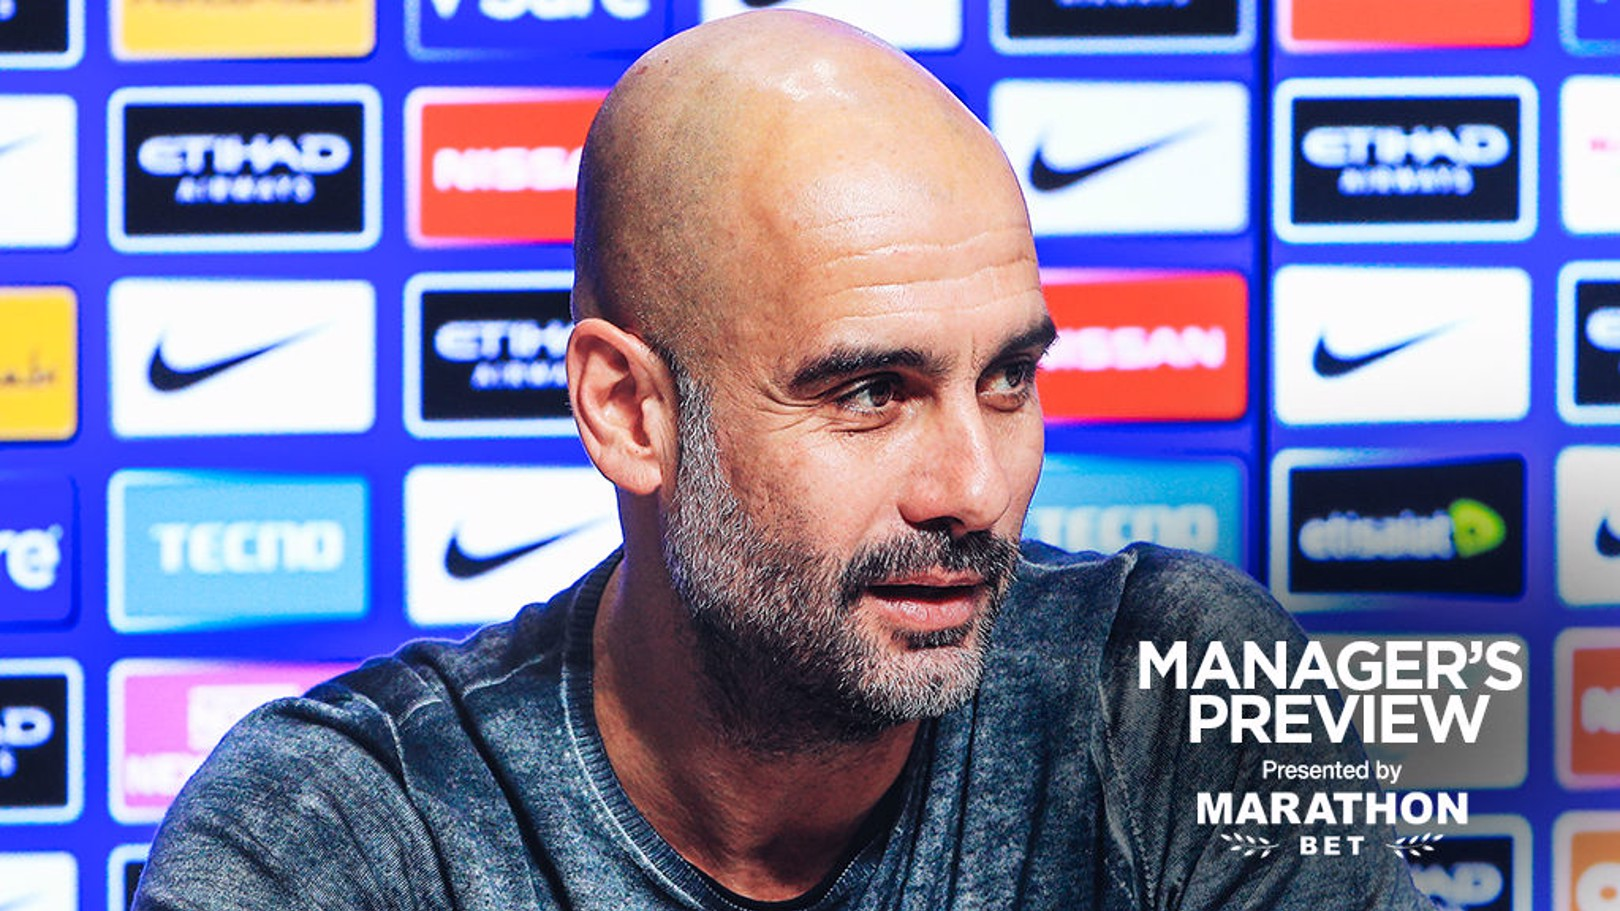 PREVIEW: Pep addresses the media ahead of our trip to Goodison Park.